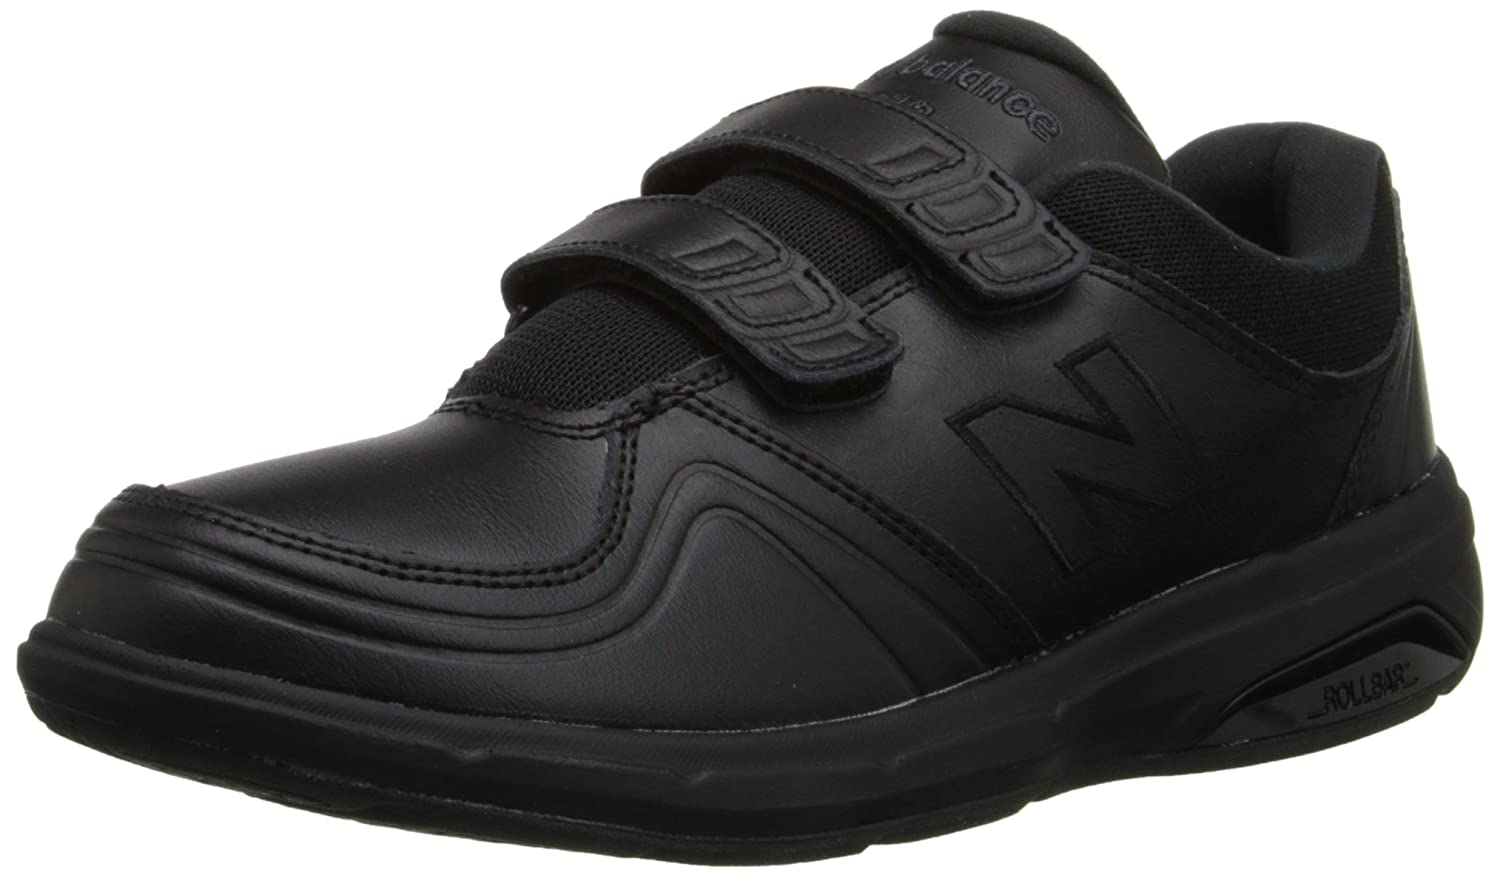 New Balance Women's WW813 Hook and Loop Walking Shoe B00OB1SLXW 12 B(M) US|Black